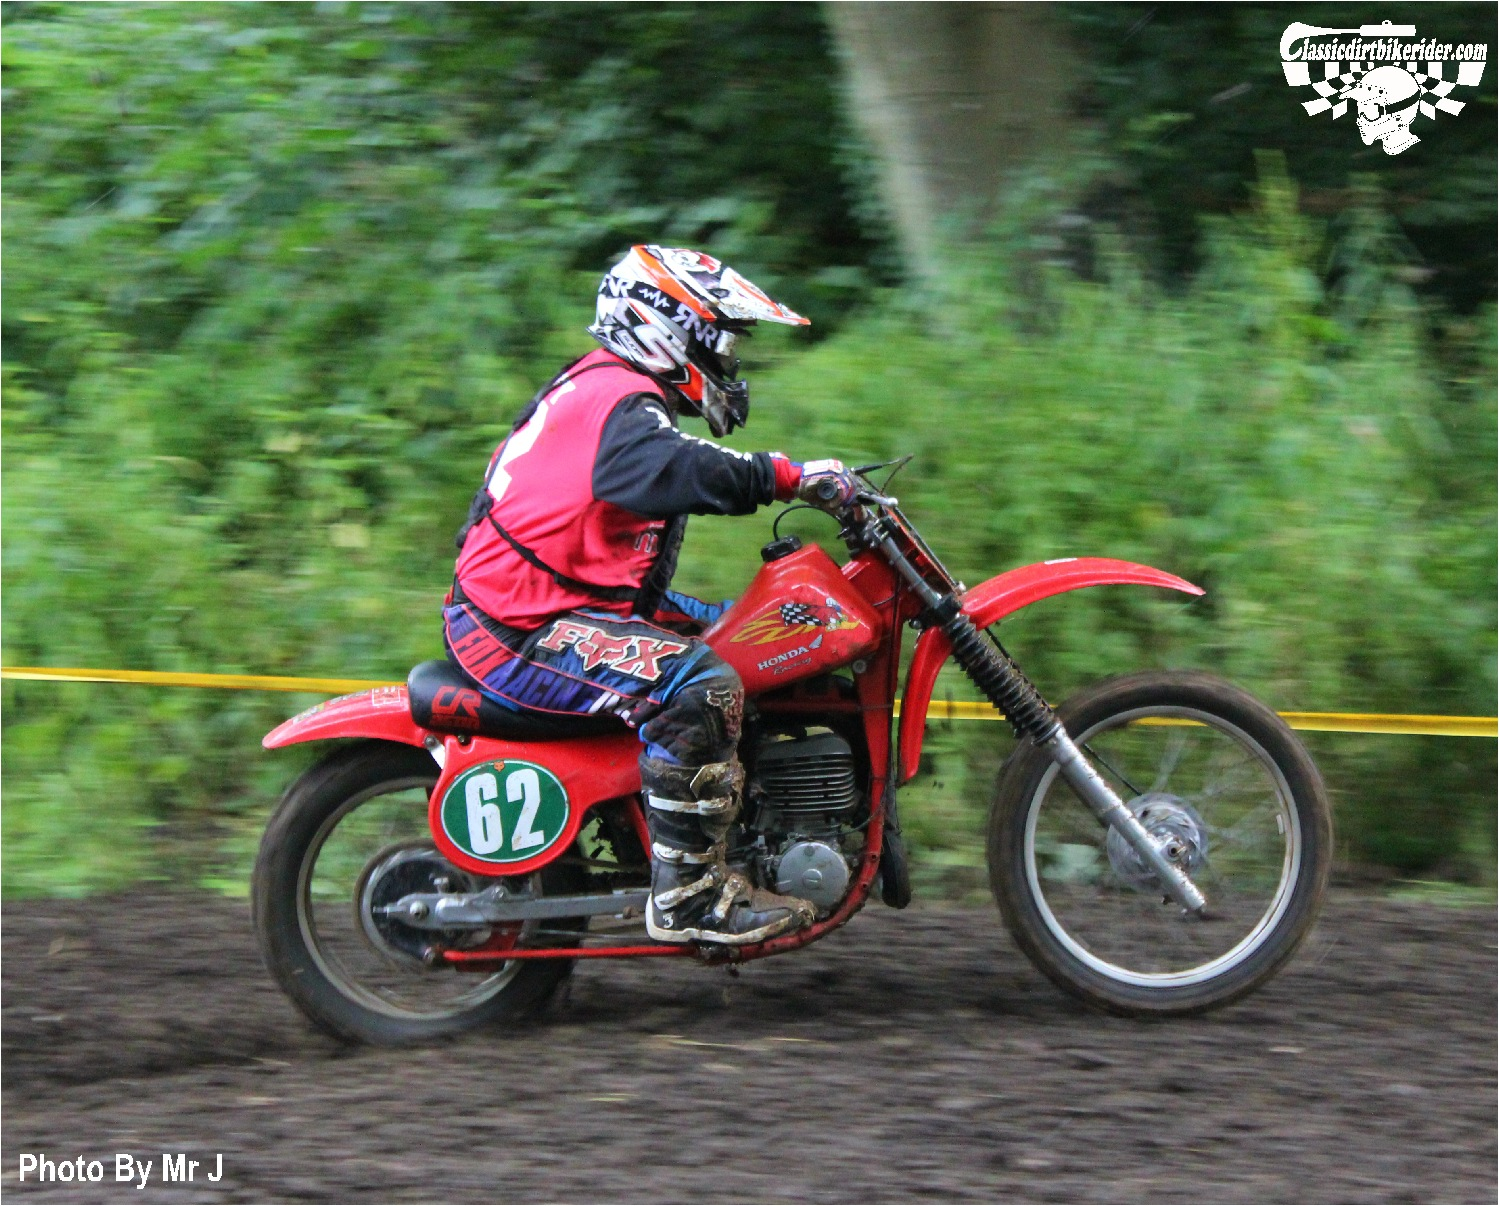 king of the castle 2015 photos Farleigh Castle twinshock motocross classicdirtbikerider.com 66